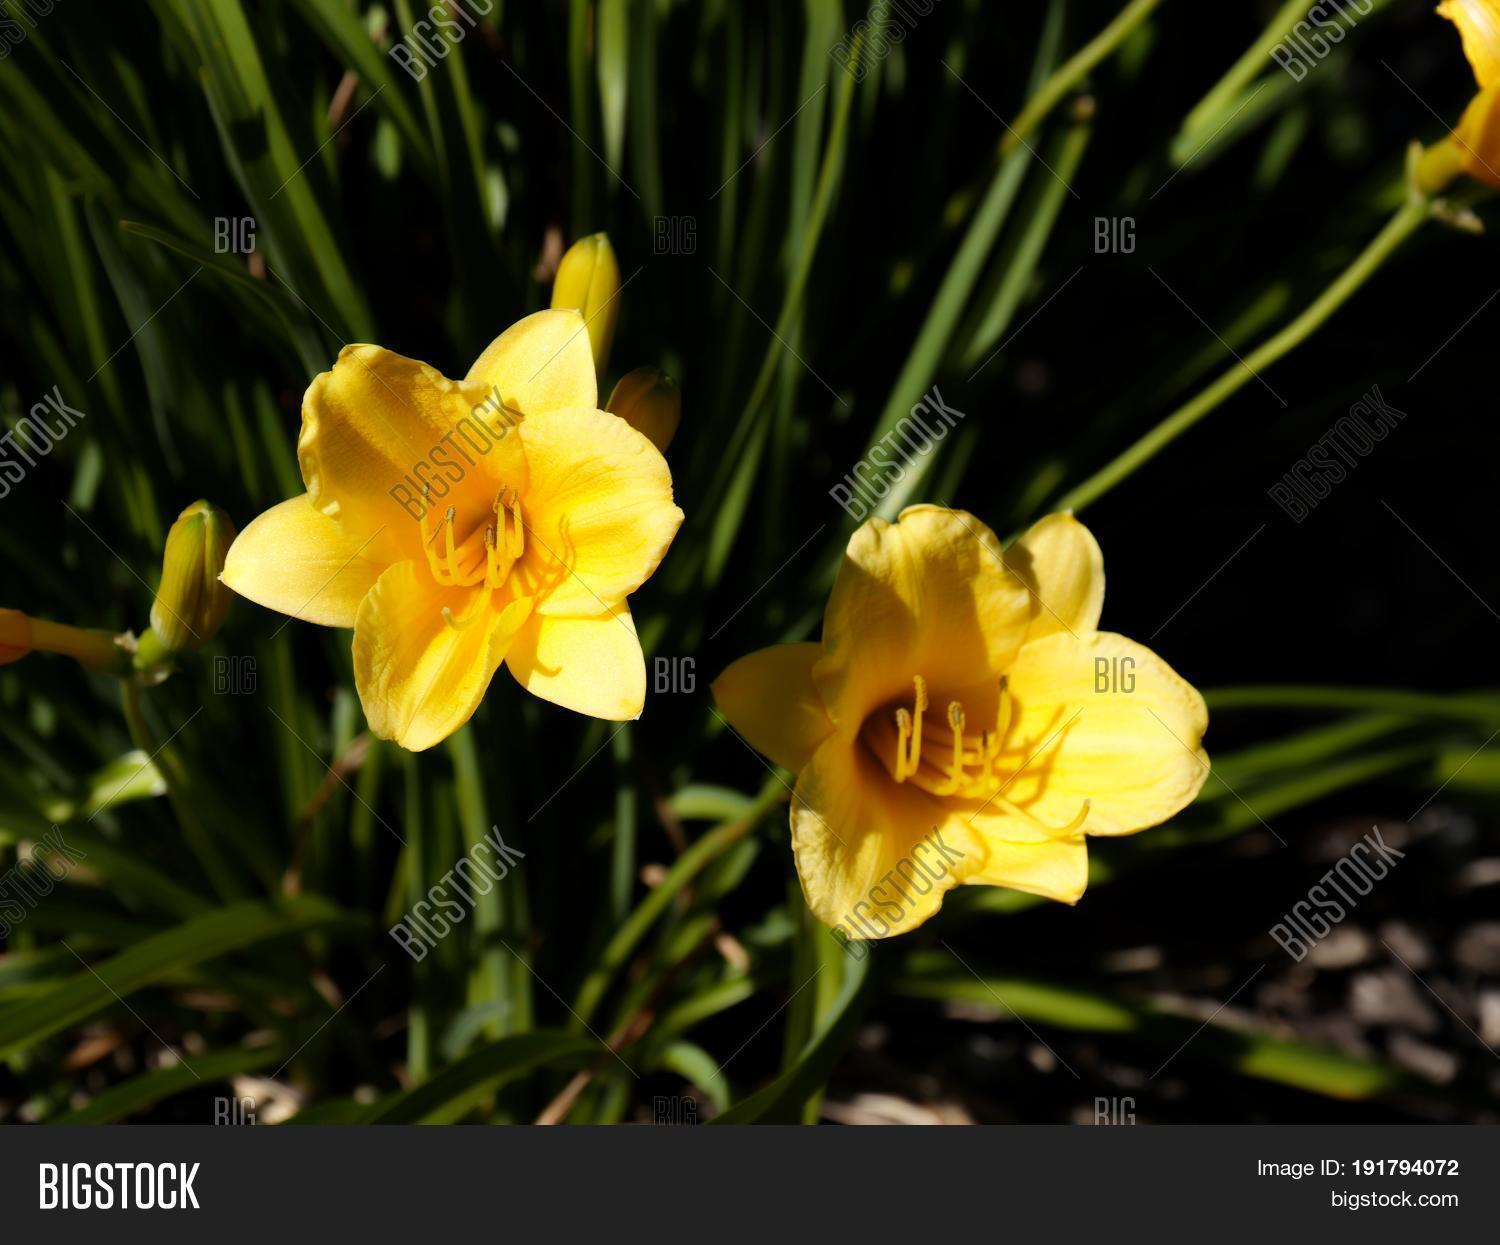 Yellow Bell Flowers Image Photo Free Trial Bigstock